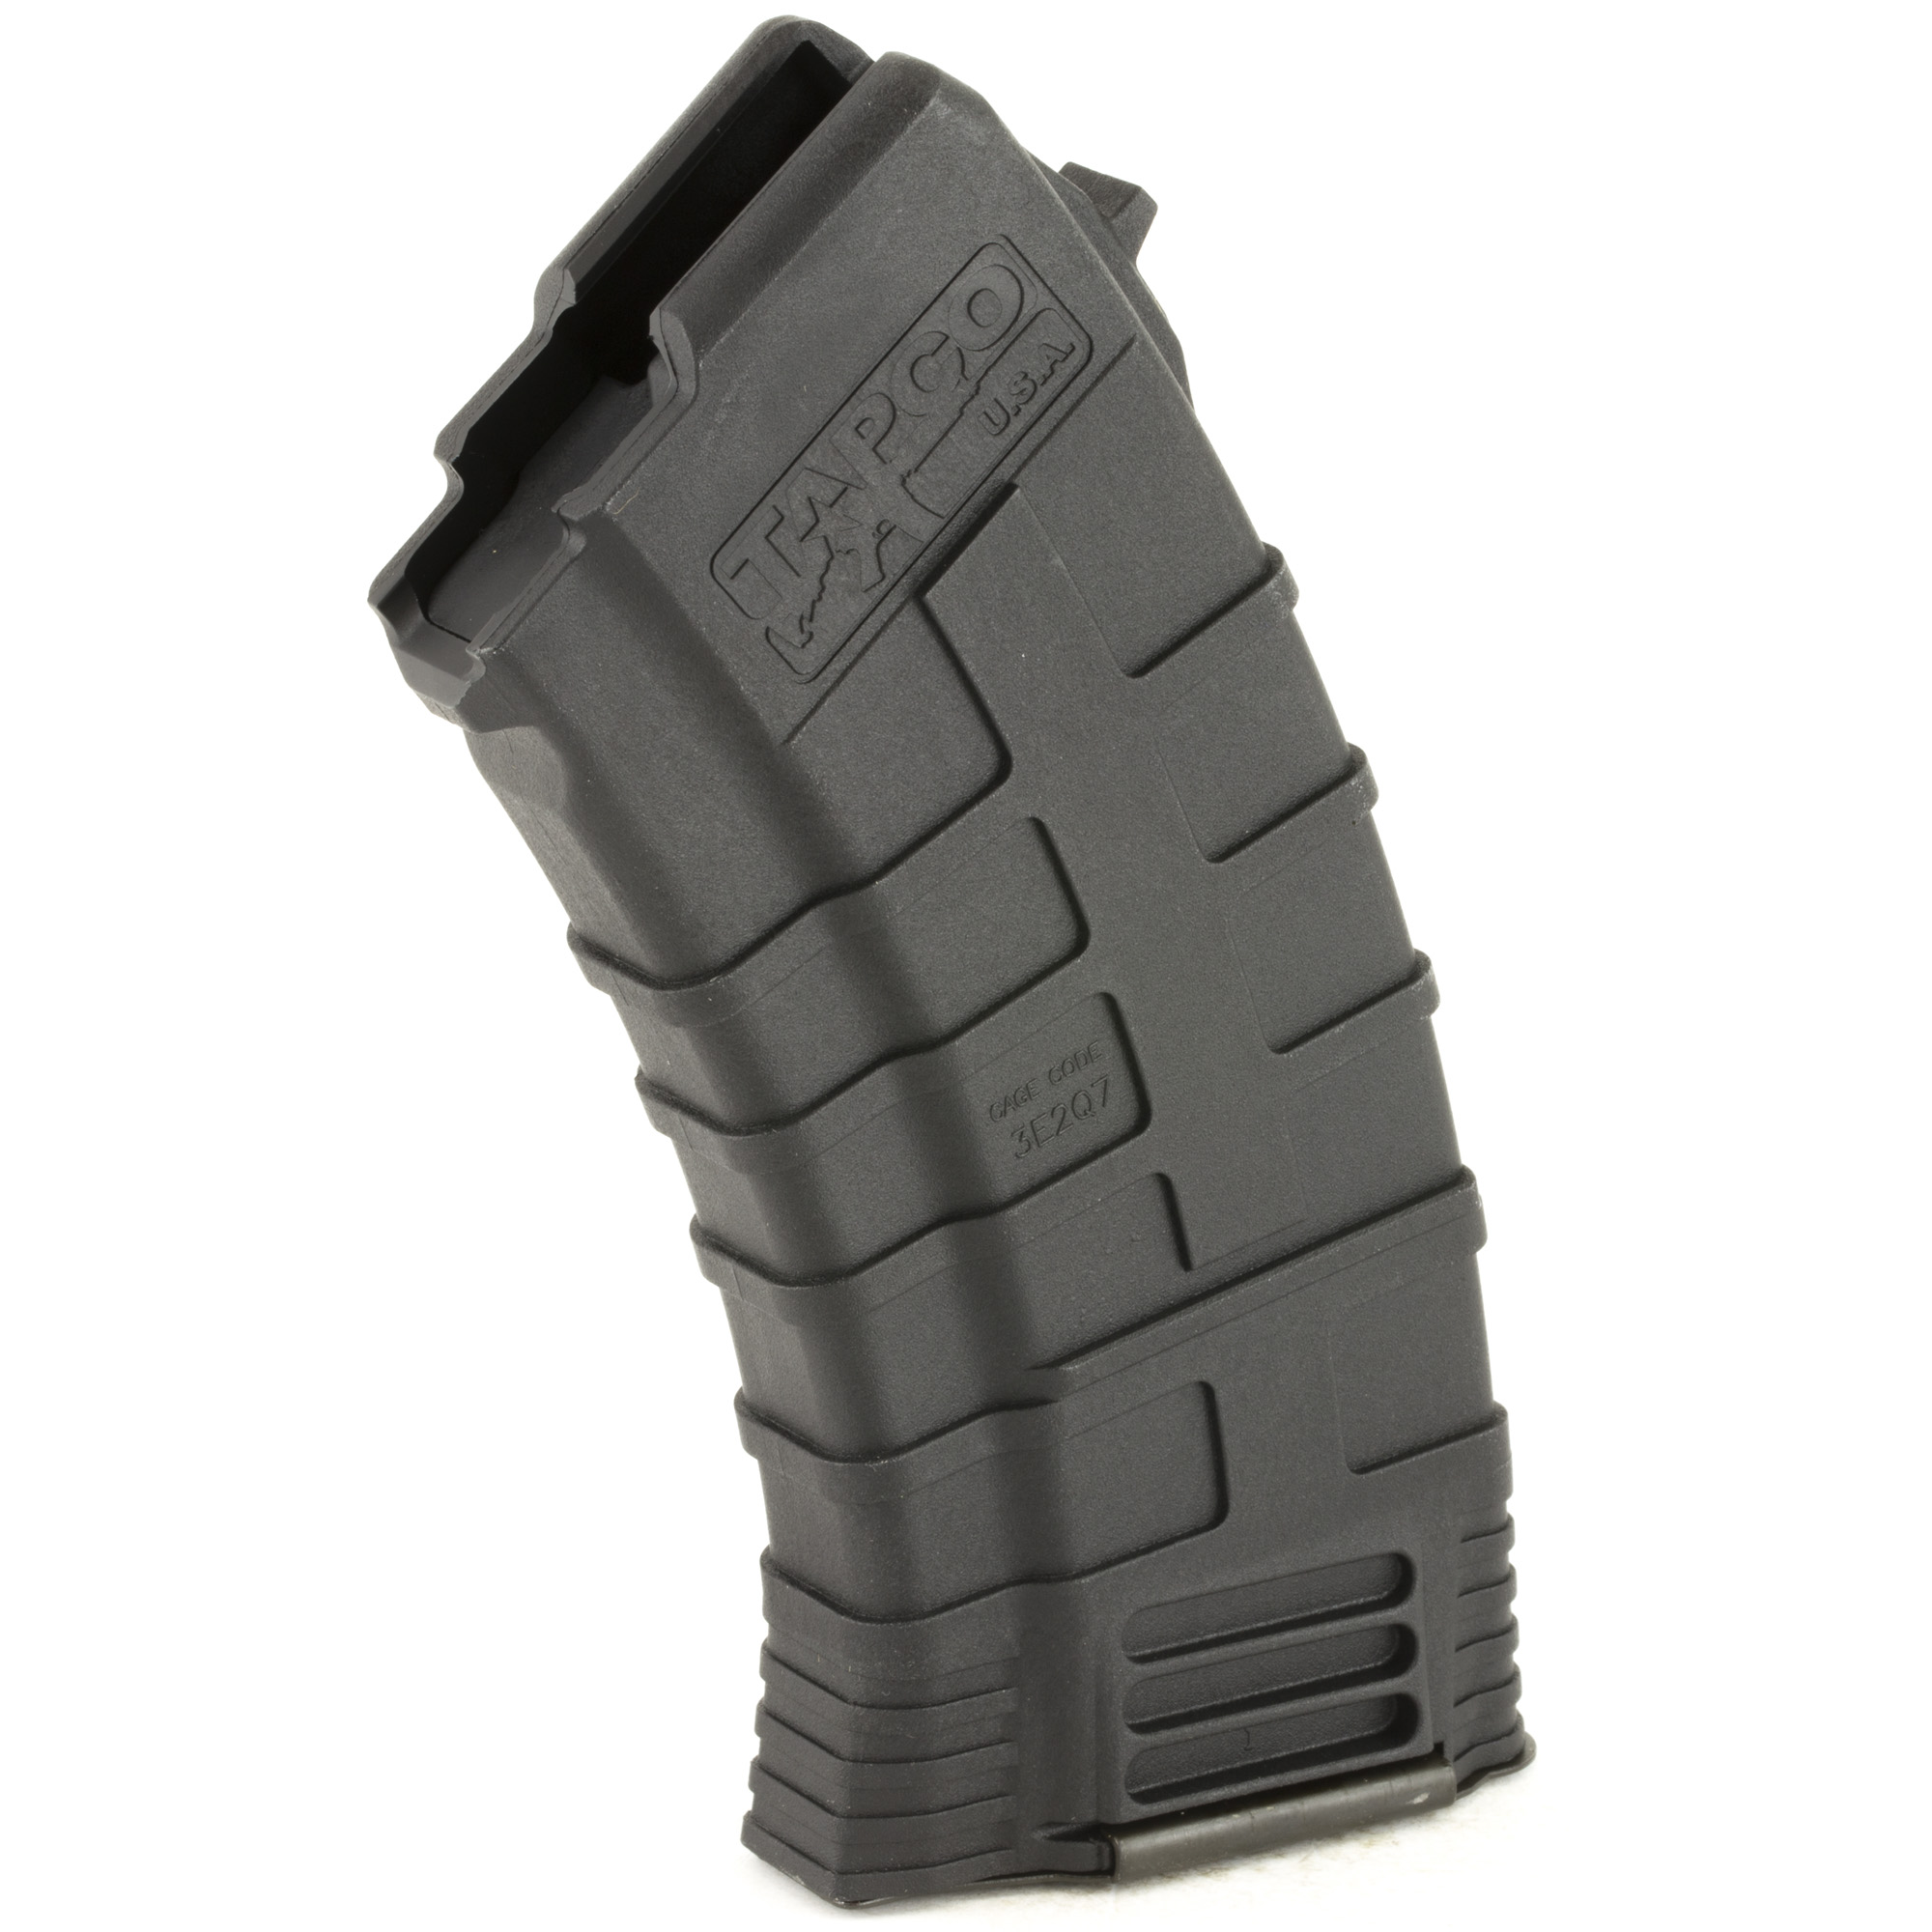 "When you want a lighter"" smaller magazine"" the Tapco 20rd AK-47 mag is your solution. It has the same time-tested features and reliability of the 30rd"" but in a more compact 20rd design. The reinforced composite material prevents corrosion while the heavy duty spring and anti-tilt follower ensure that every round will feed perfectly. Fits the AK-47 using 7.62x39mm ammunition. Not to mention that this magazine counts as 3 U.S. 922r compliant parts."